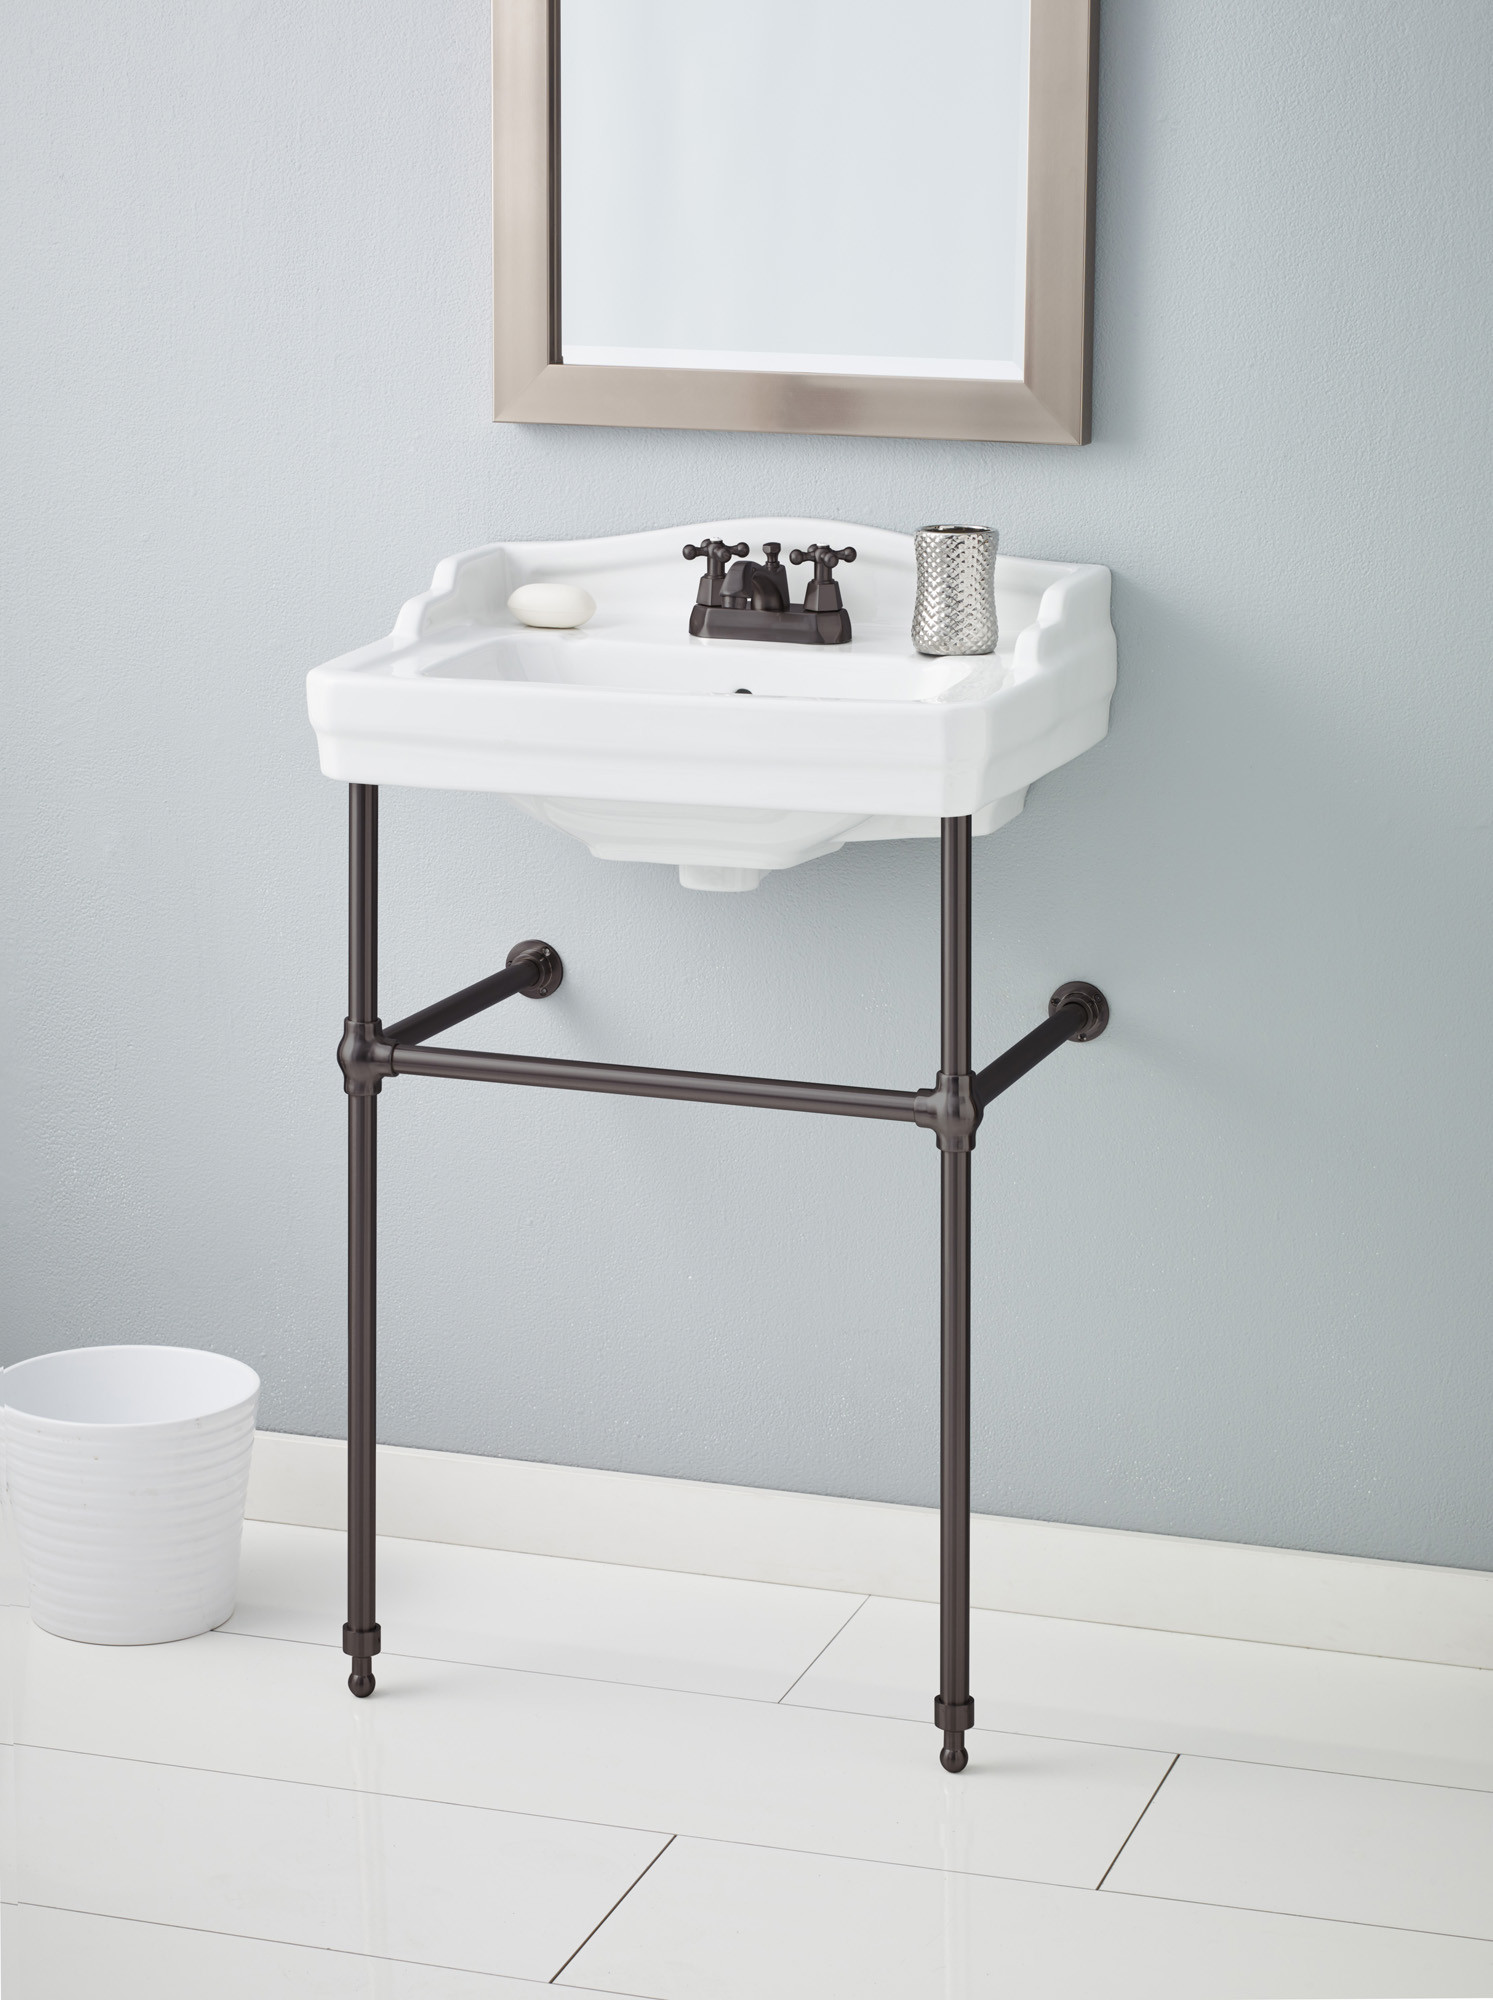 Cheviot 553-WH-1-575-AB Essex Antique Bronze Console Stand Lavatory Sink in White